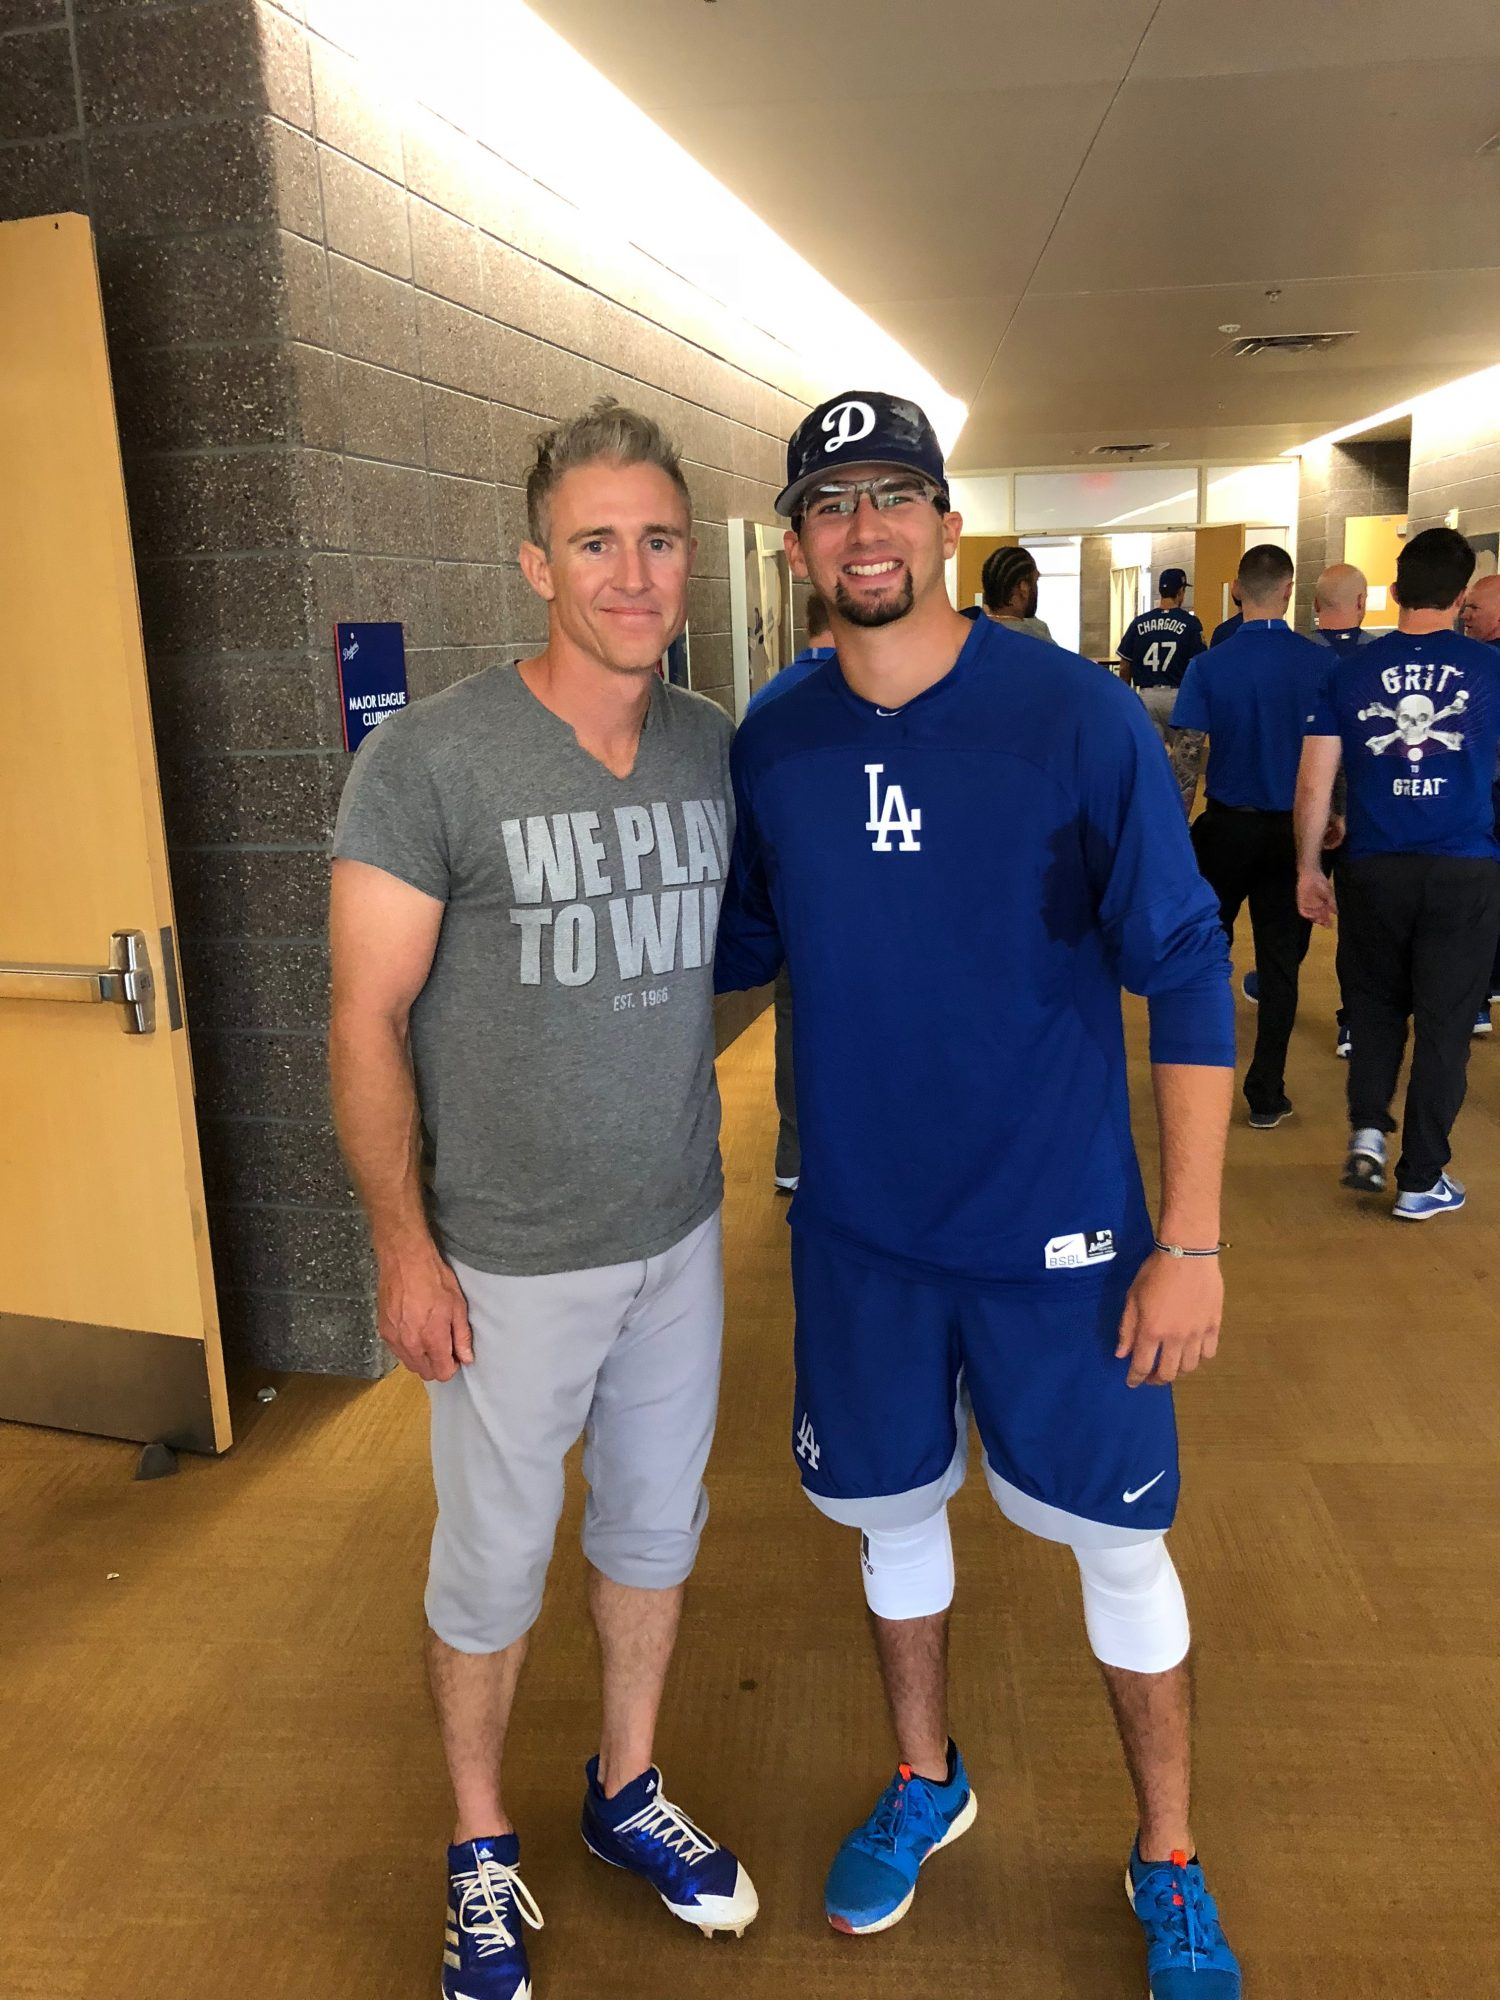 Boy With Cancer Who Took Picture With MLB Star Reunites With Him 13 Years Later as a Dodger